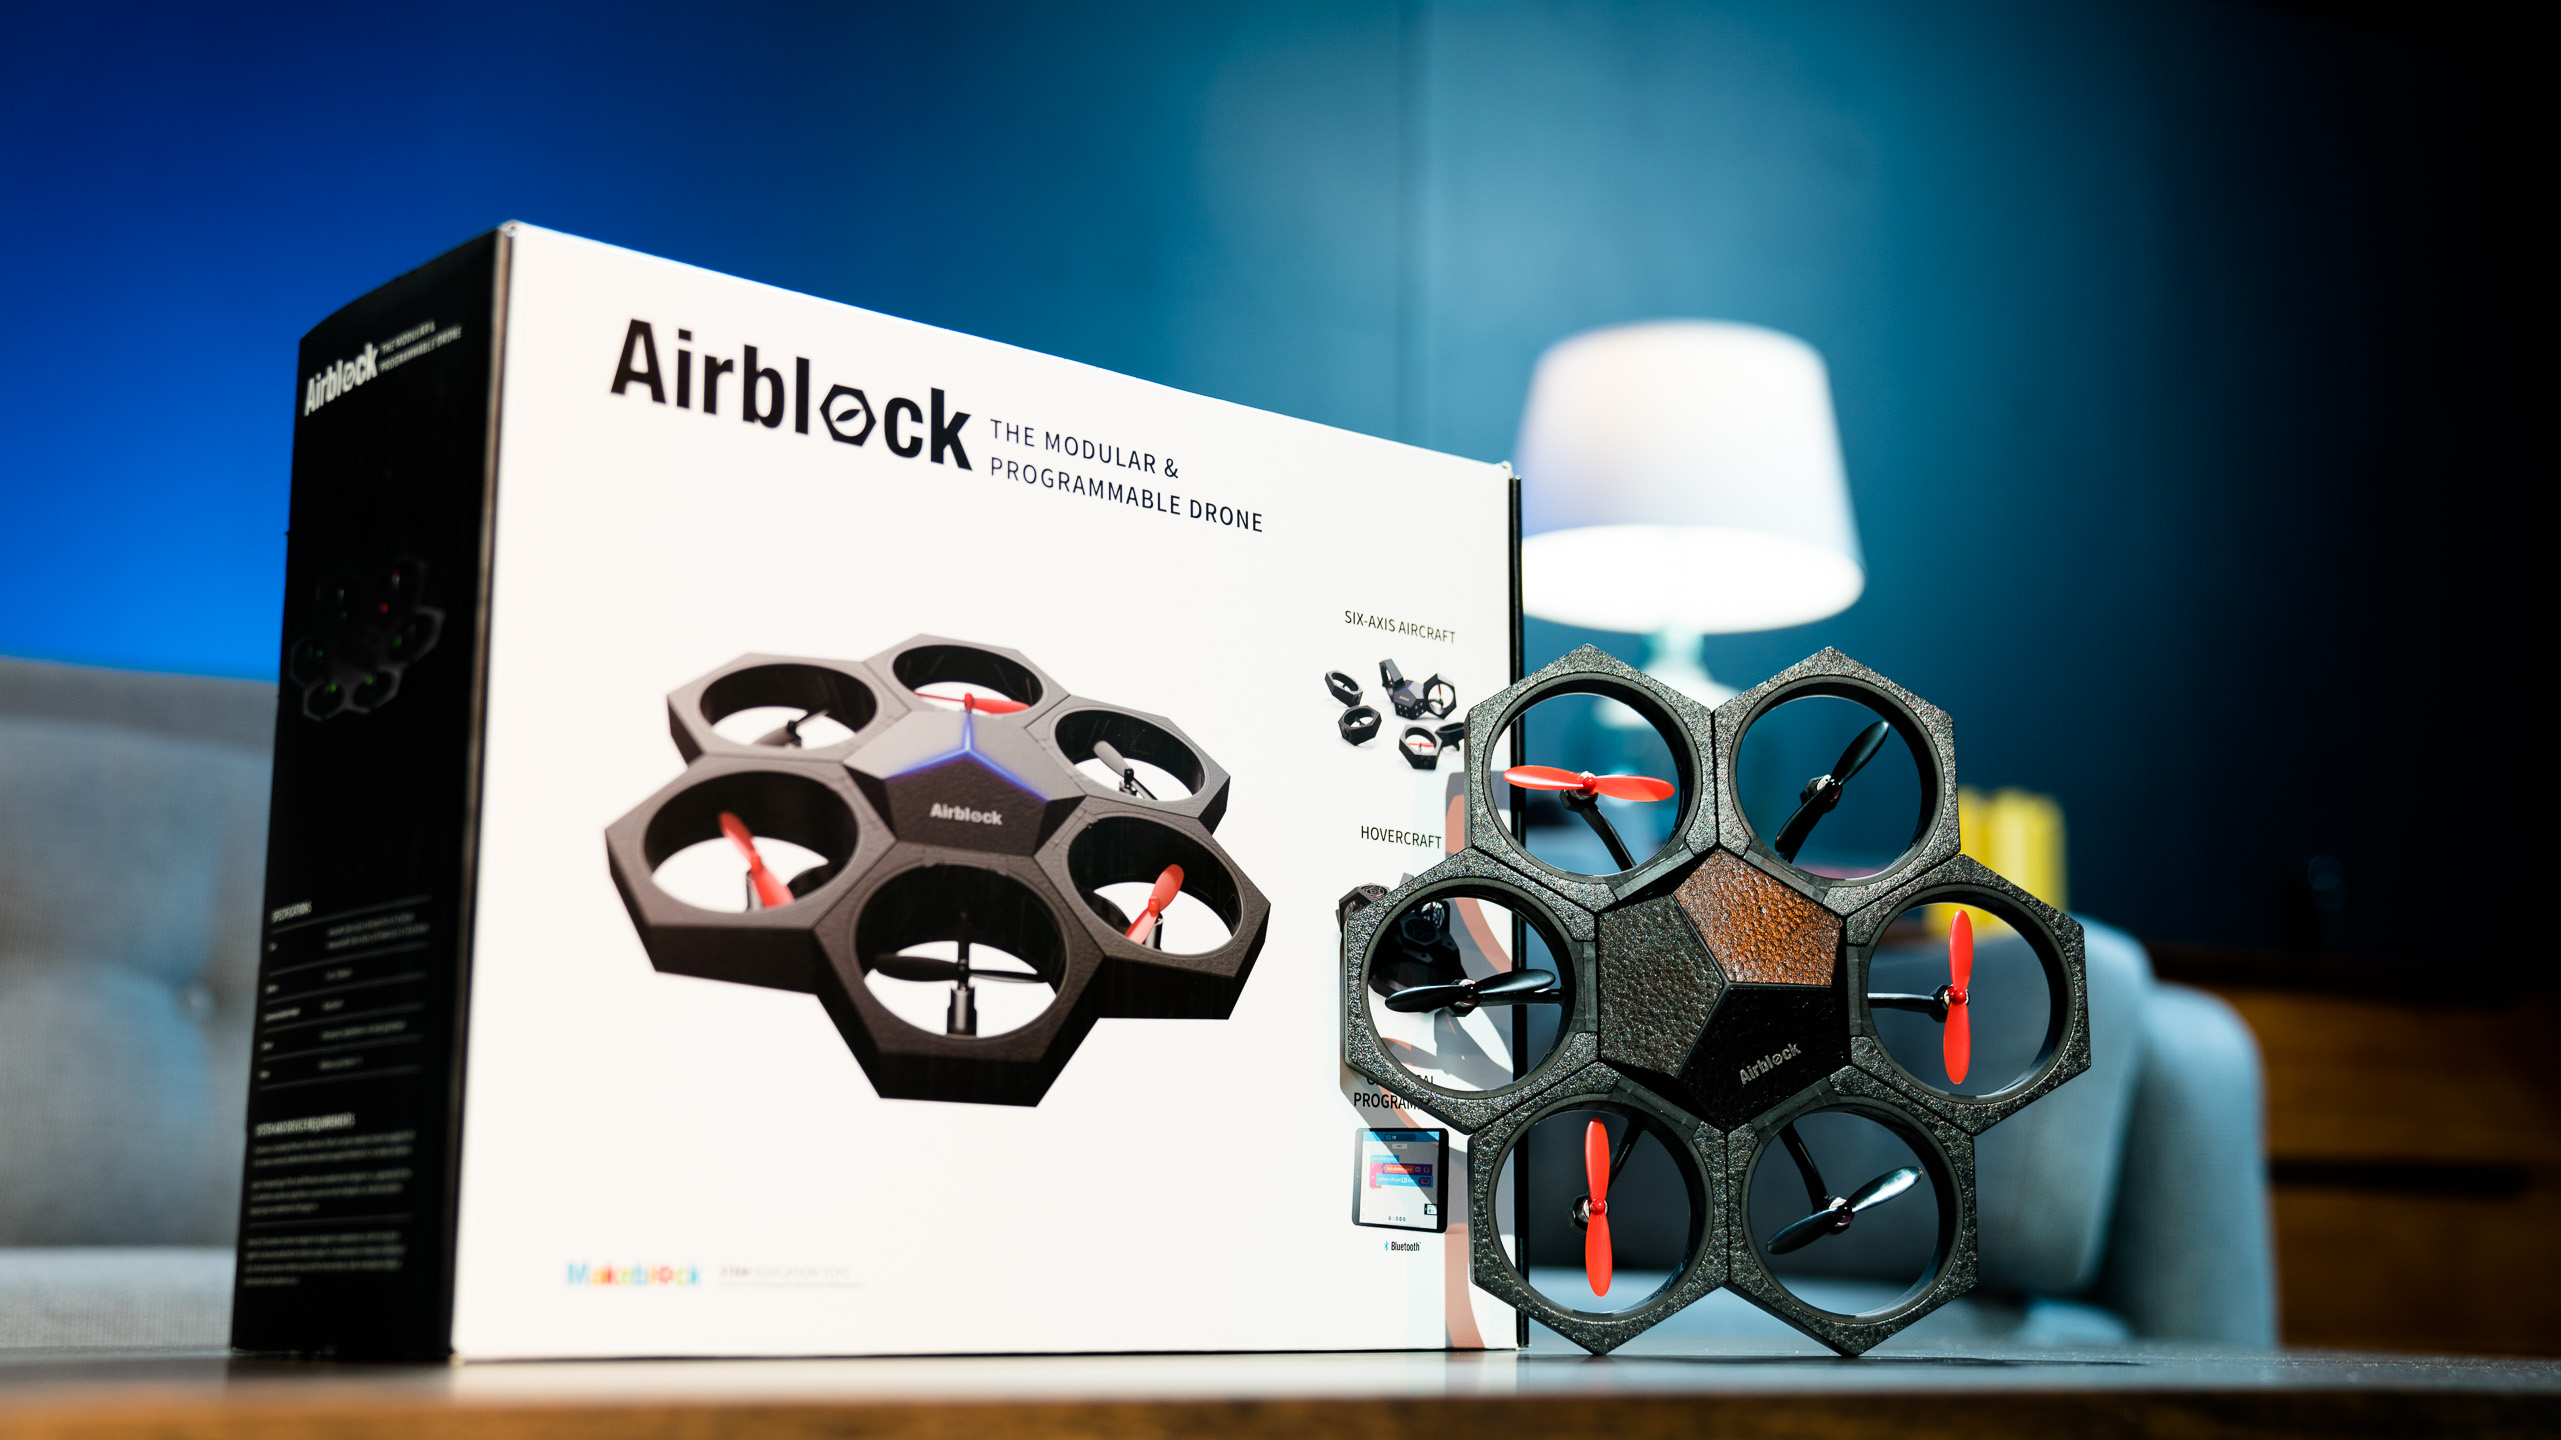 The Airblock programmable drone is another STEM toy from Makeblock that combines coding with a fun construction aspect, to teach kids applicable tech skills.